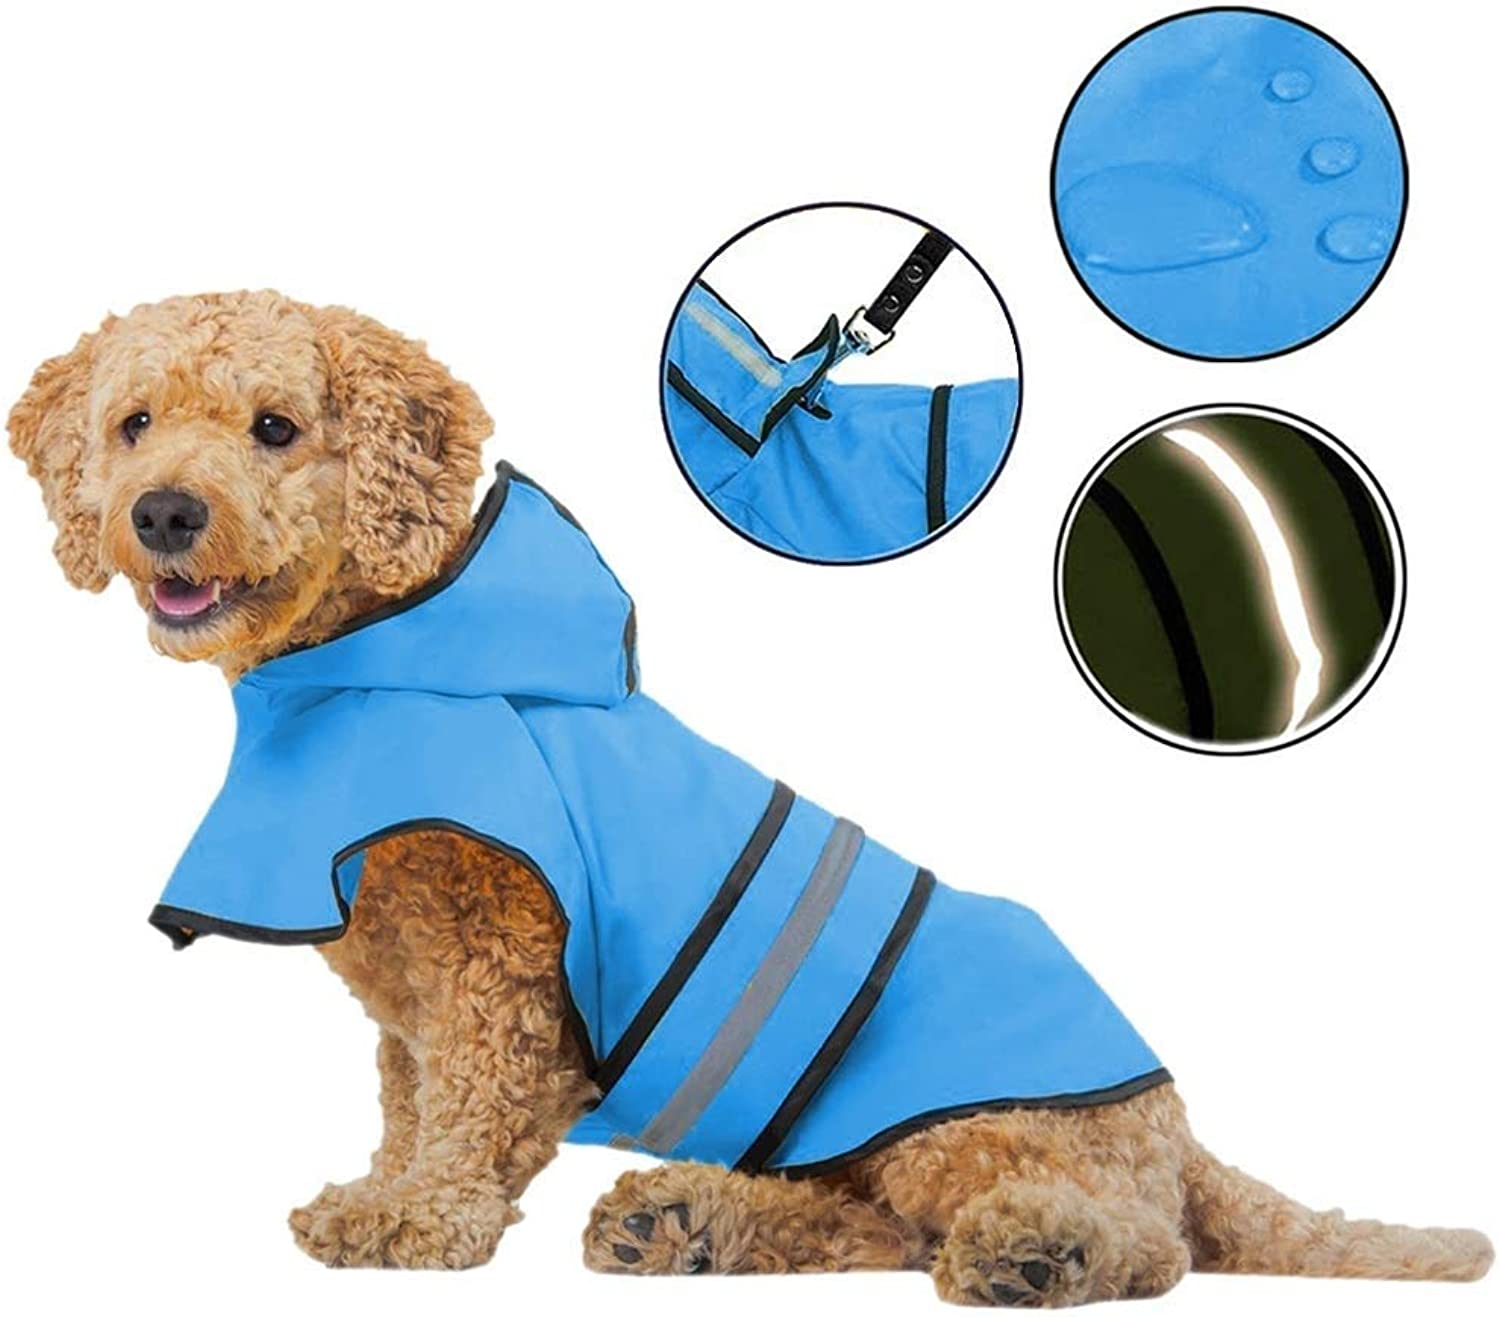 Raincoat for Dogs  Lightweight Dog Rain Jacket  Adjustable Dog Raincoats for Small Medium Large Dogs, Breathable Dog Rain Coats with Safe Reflective Stripes